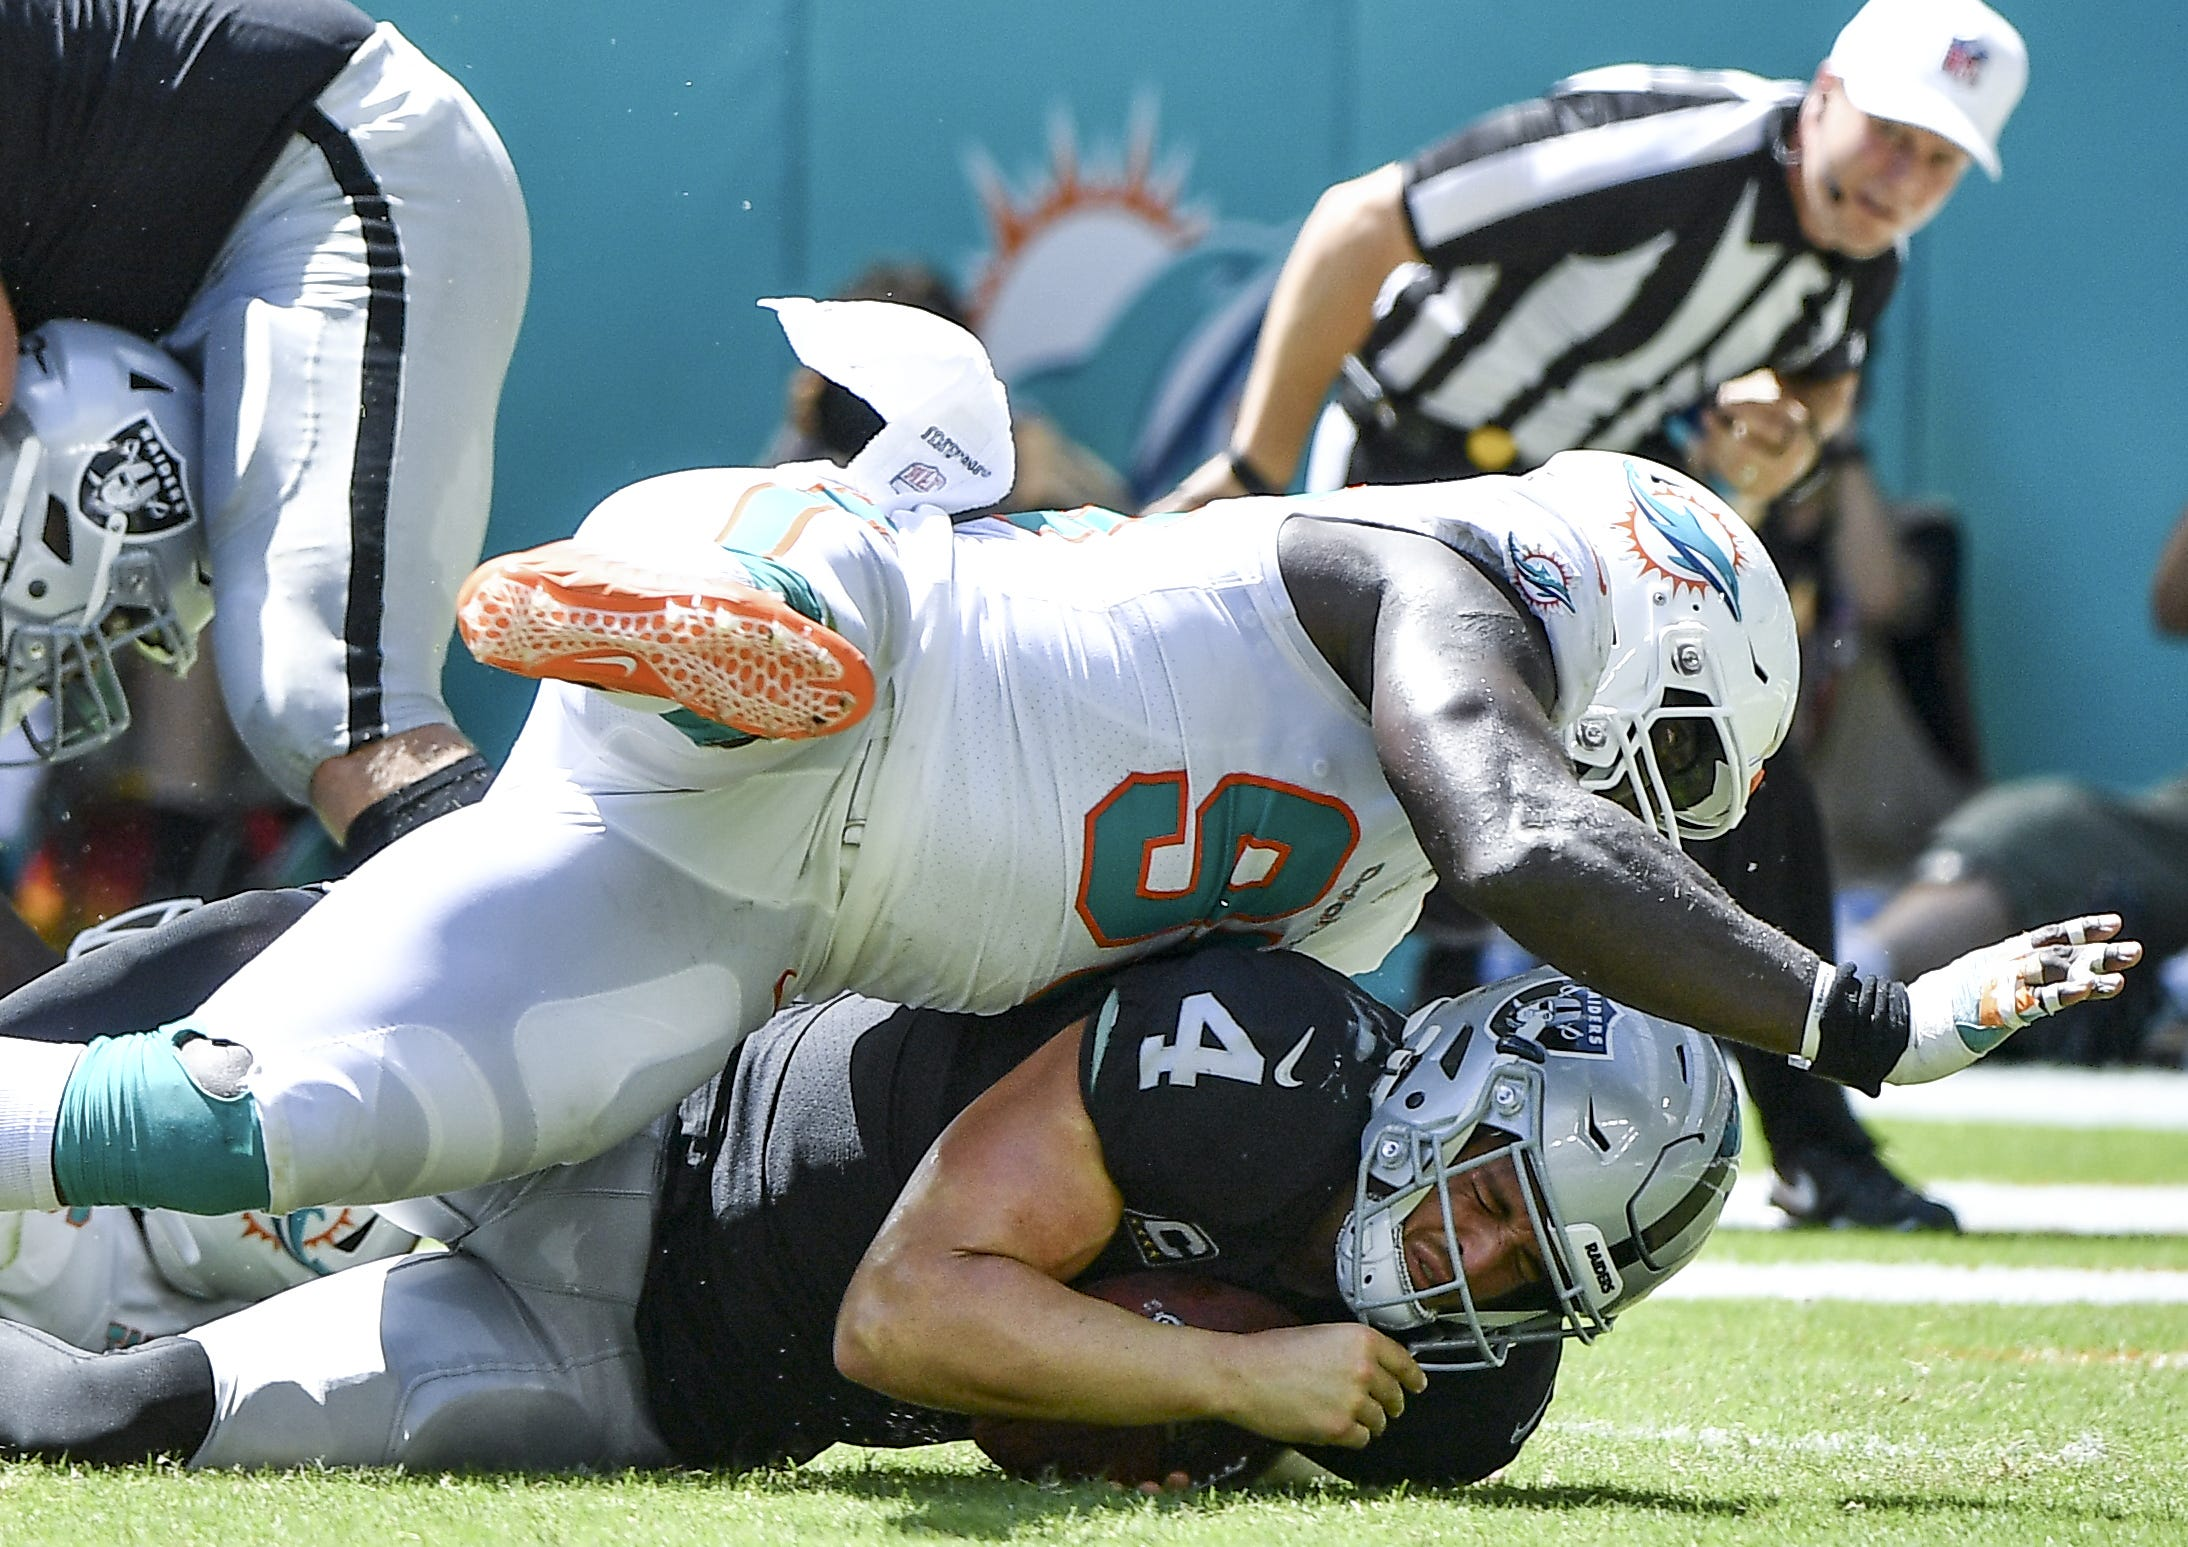 Dolphins say Williams Hayes tore ACL trying to avoid penalty on sack; Richard Sherman rips NFL